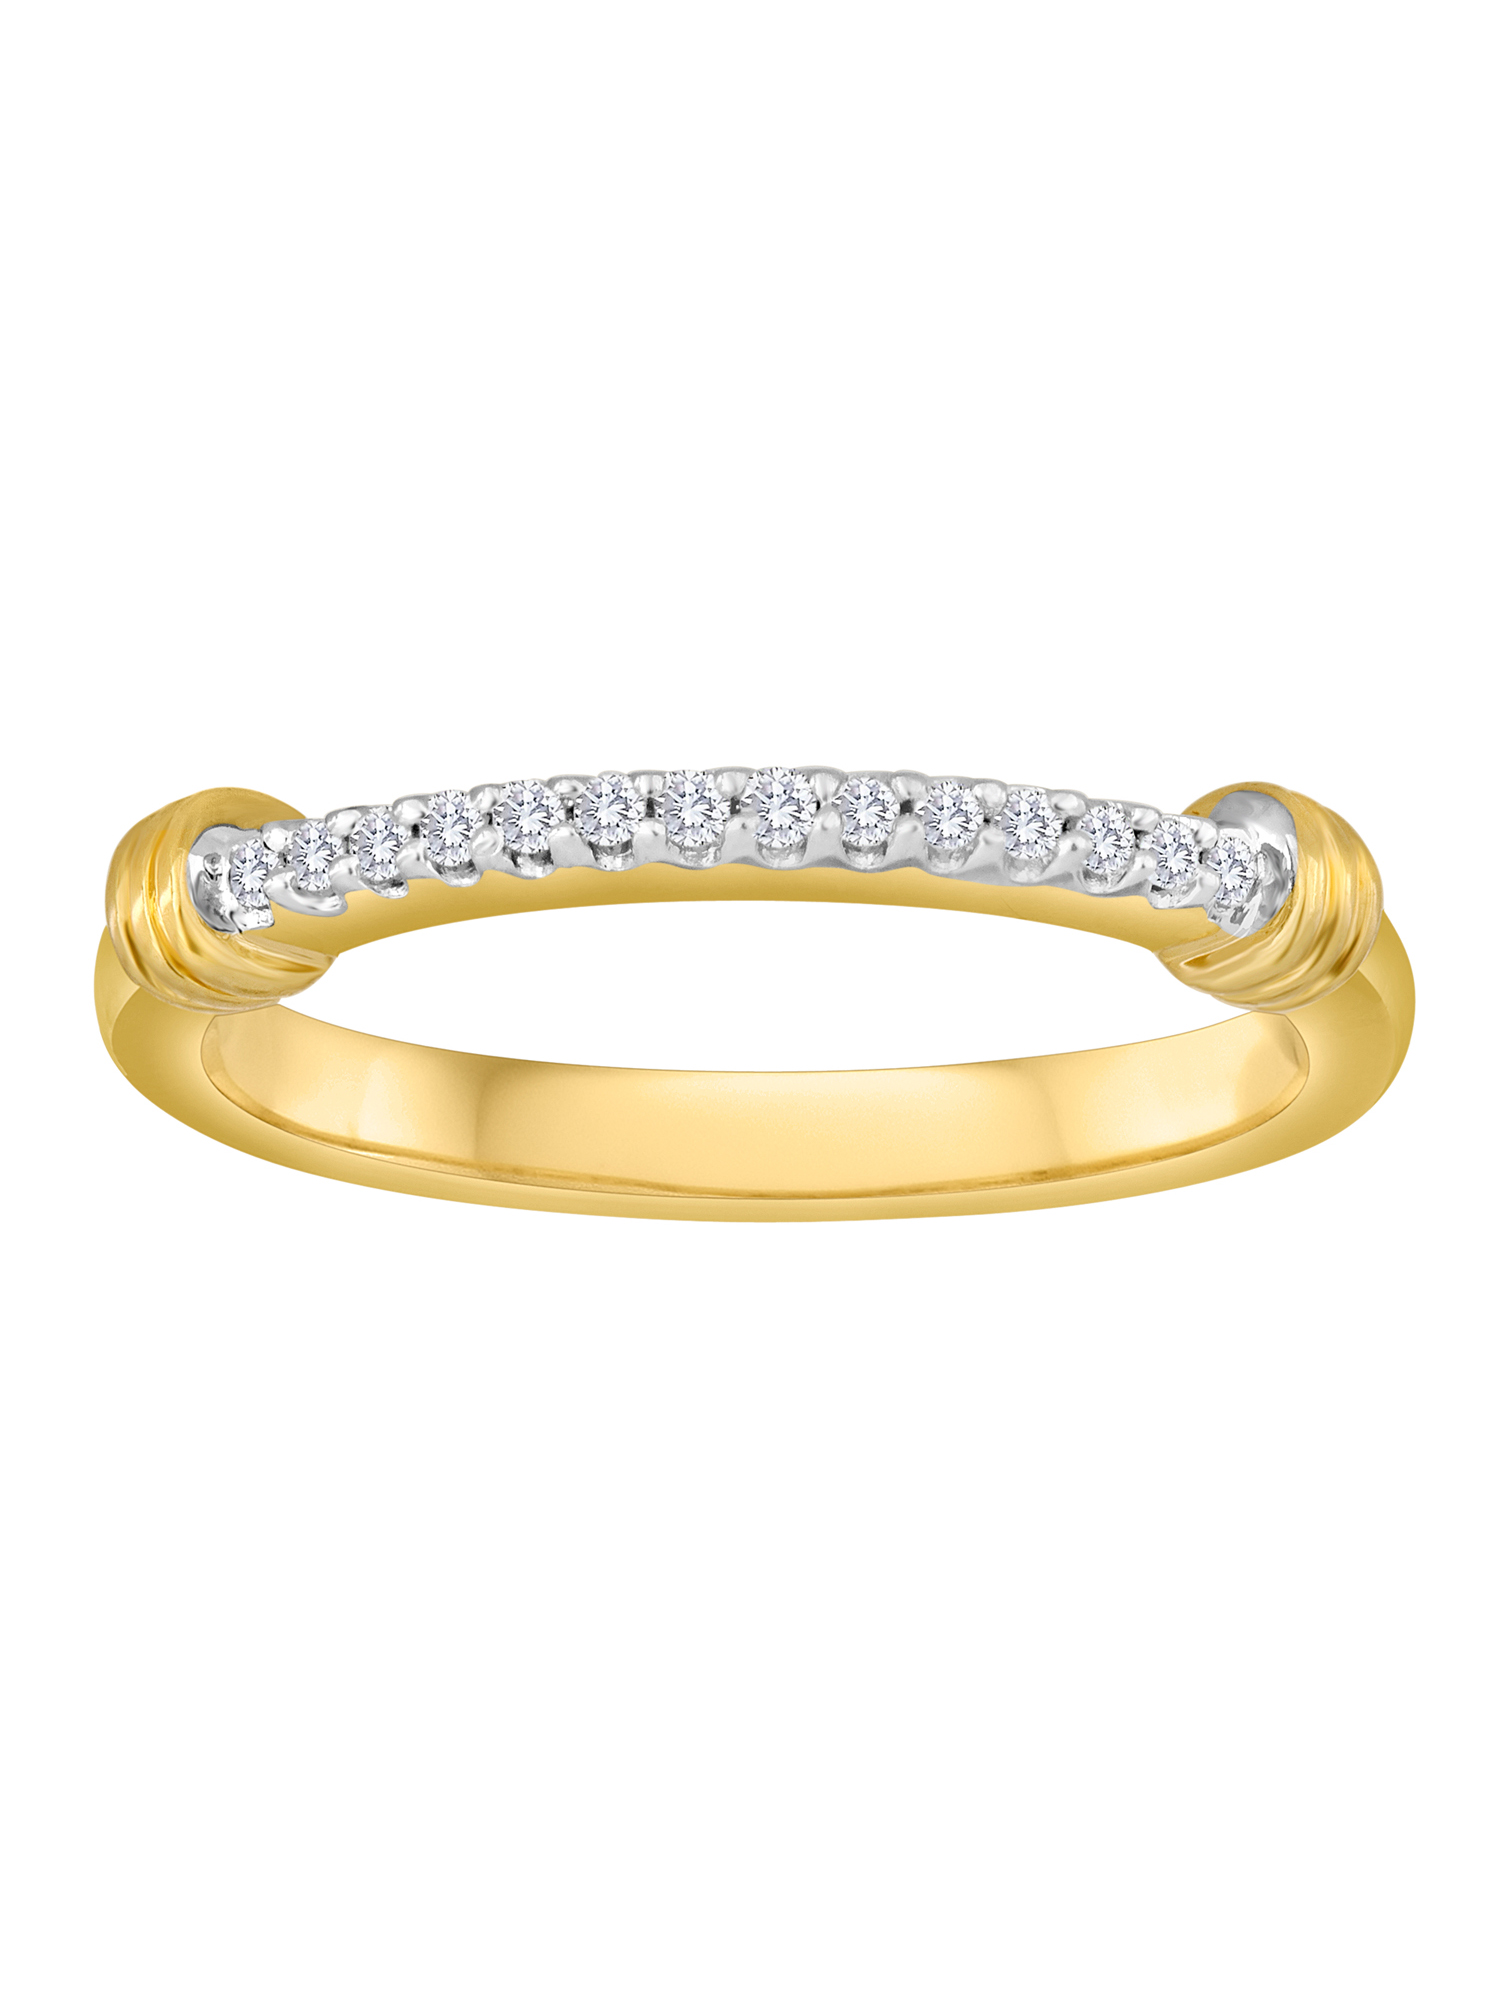 Knots of Love 14kt Yellow Gold over Sterling Silver 1/10 Carat T.W. Diamond Band Ring